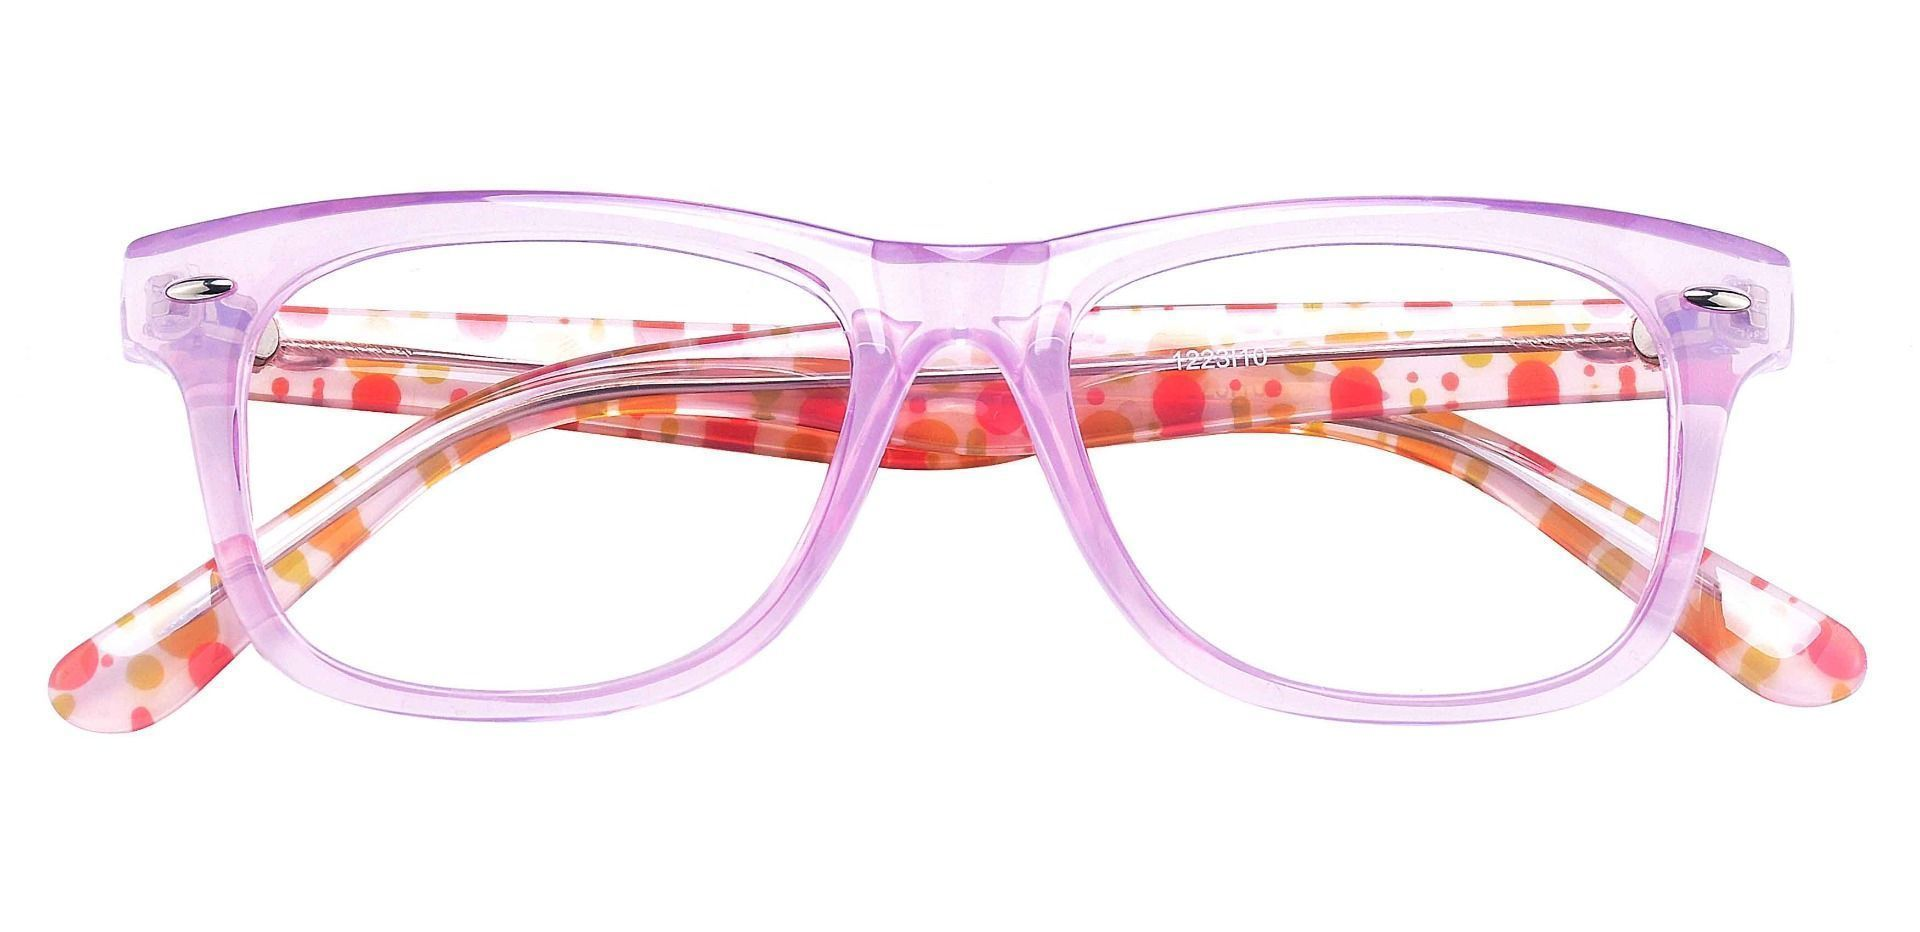 Leria Square Prescription Glasses - Pink